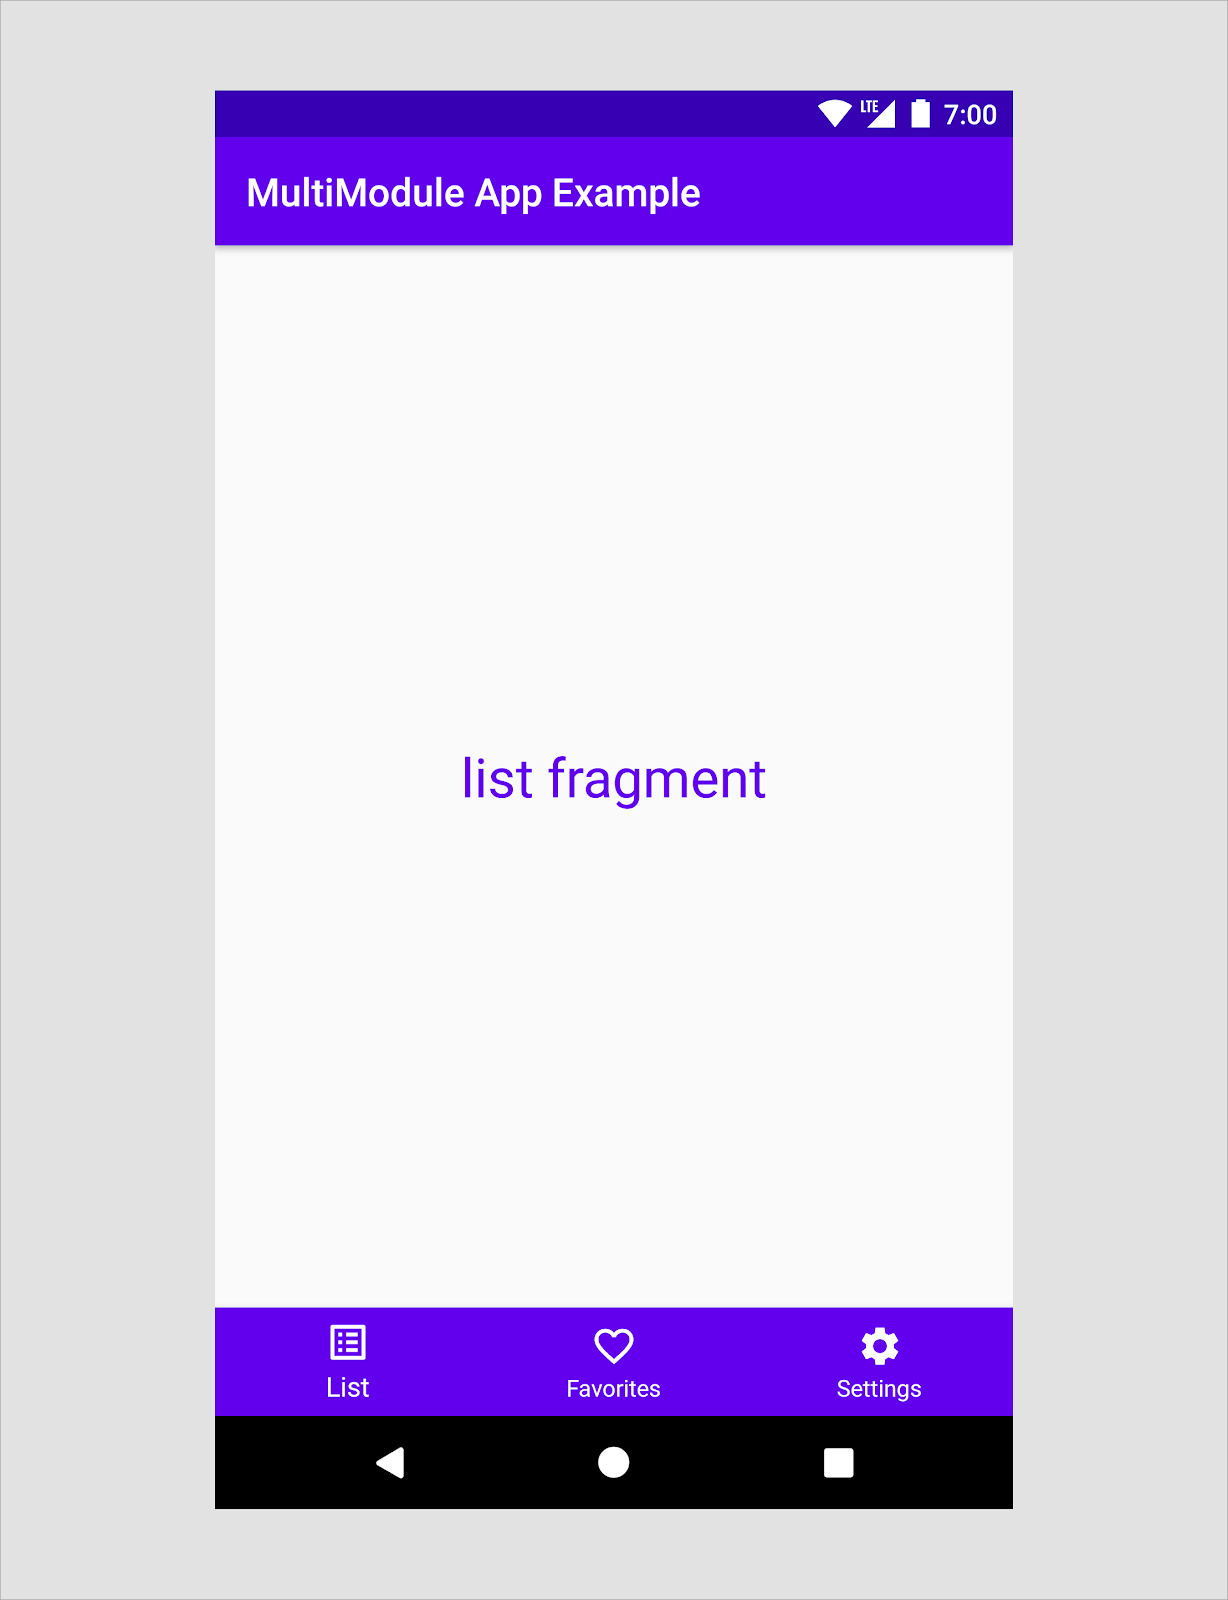 the start destination of the example app